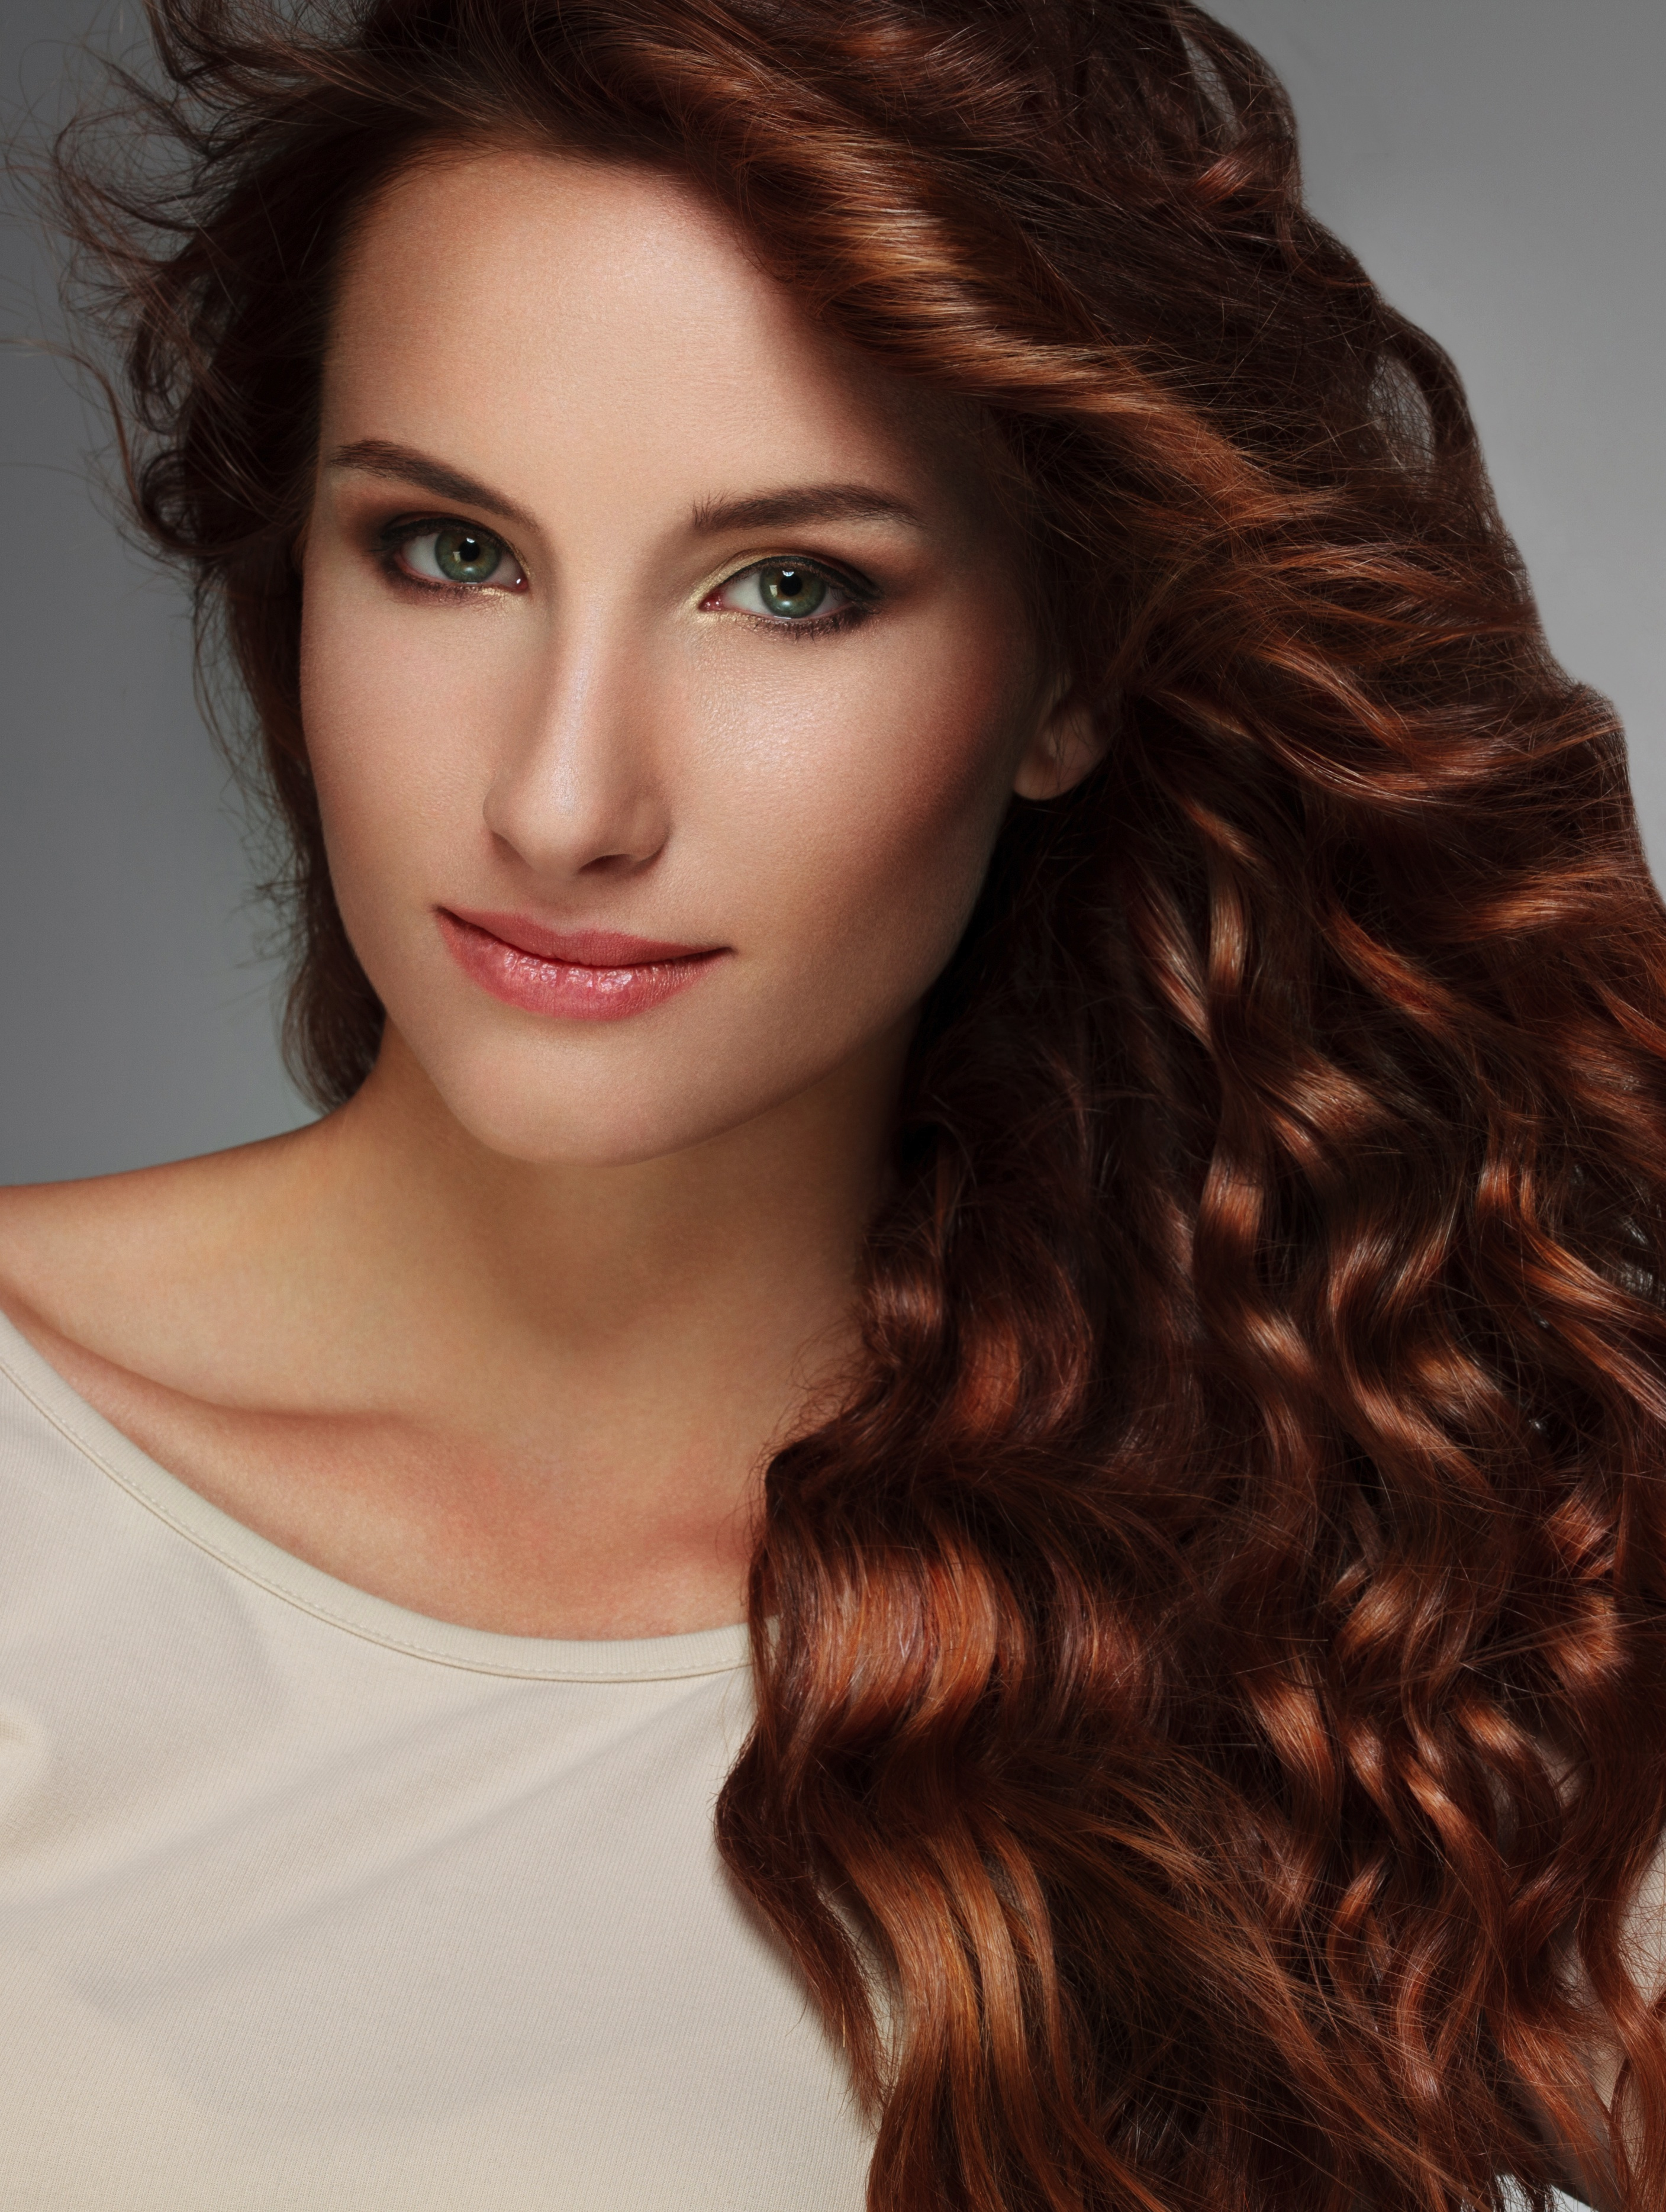 The Best Tools for Flipped, Waved & Curled Hair